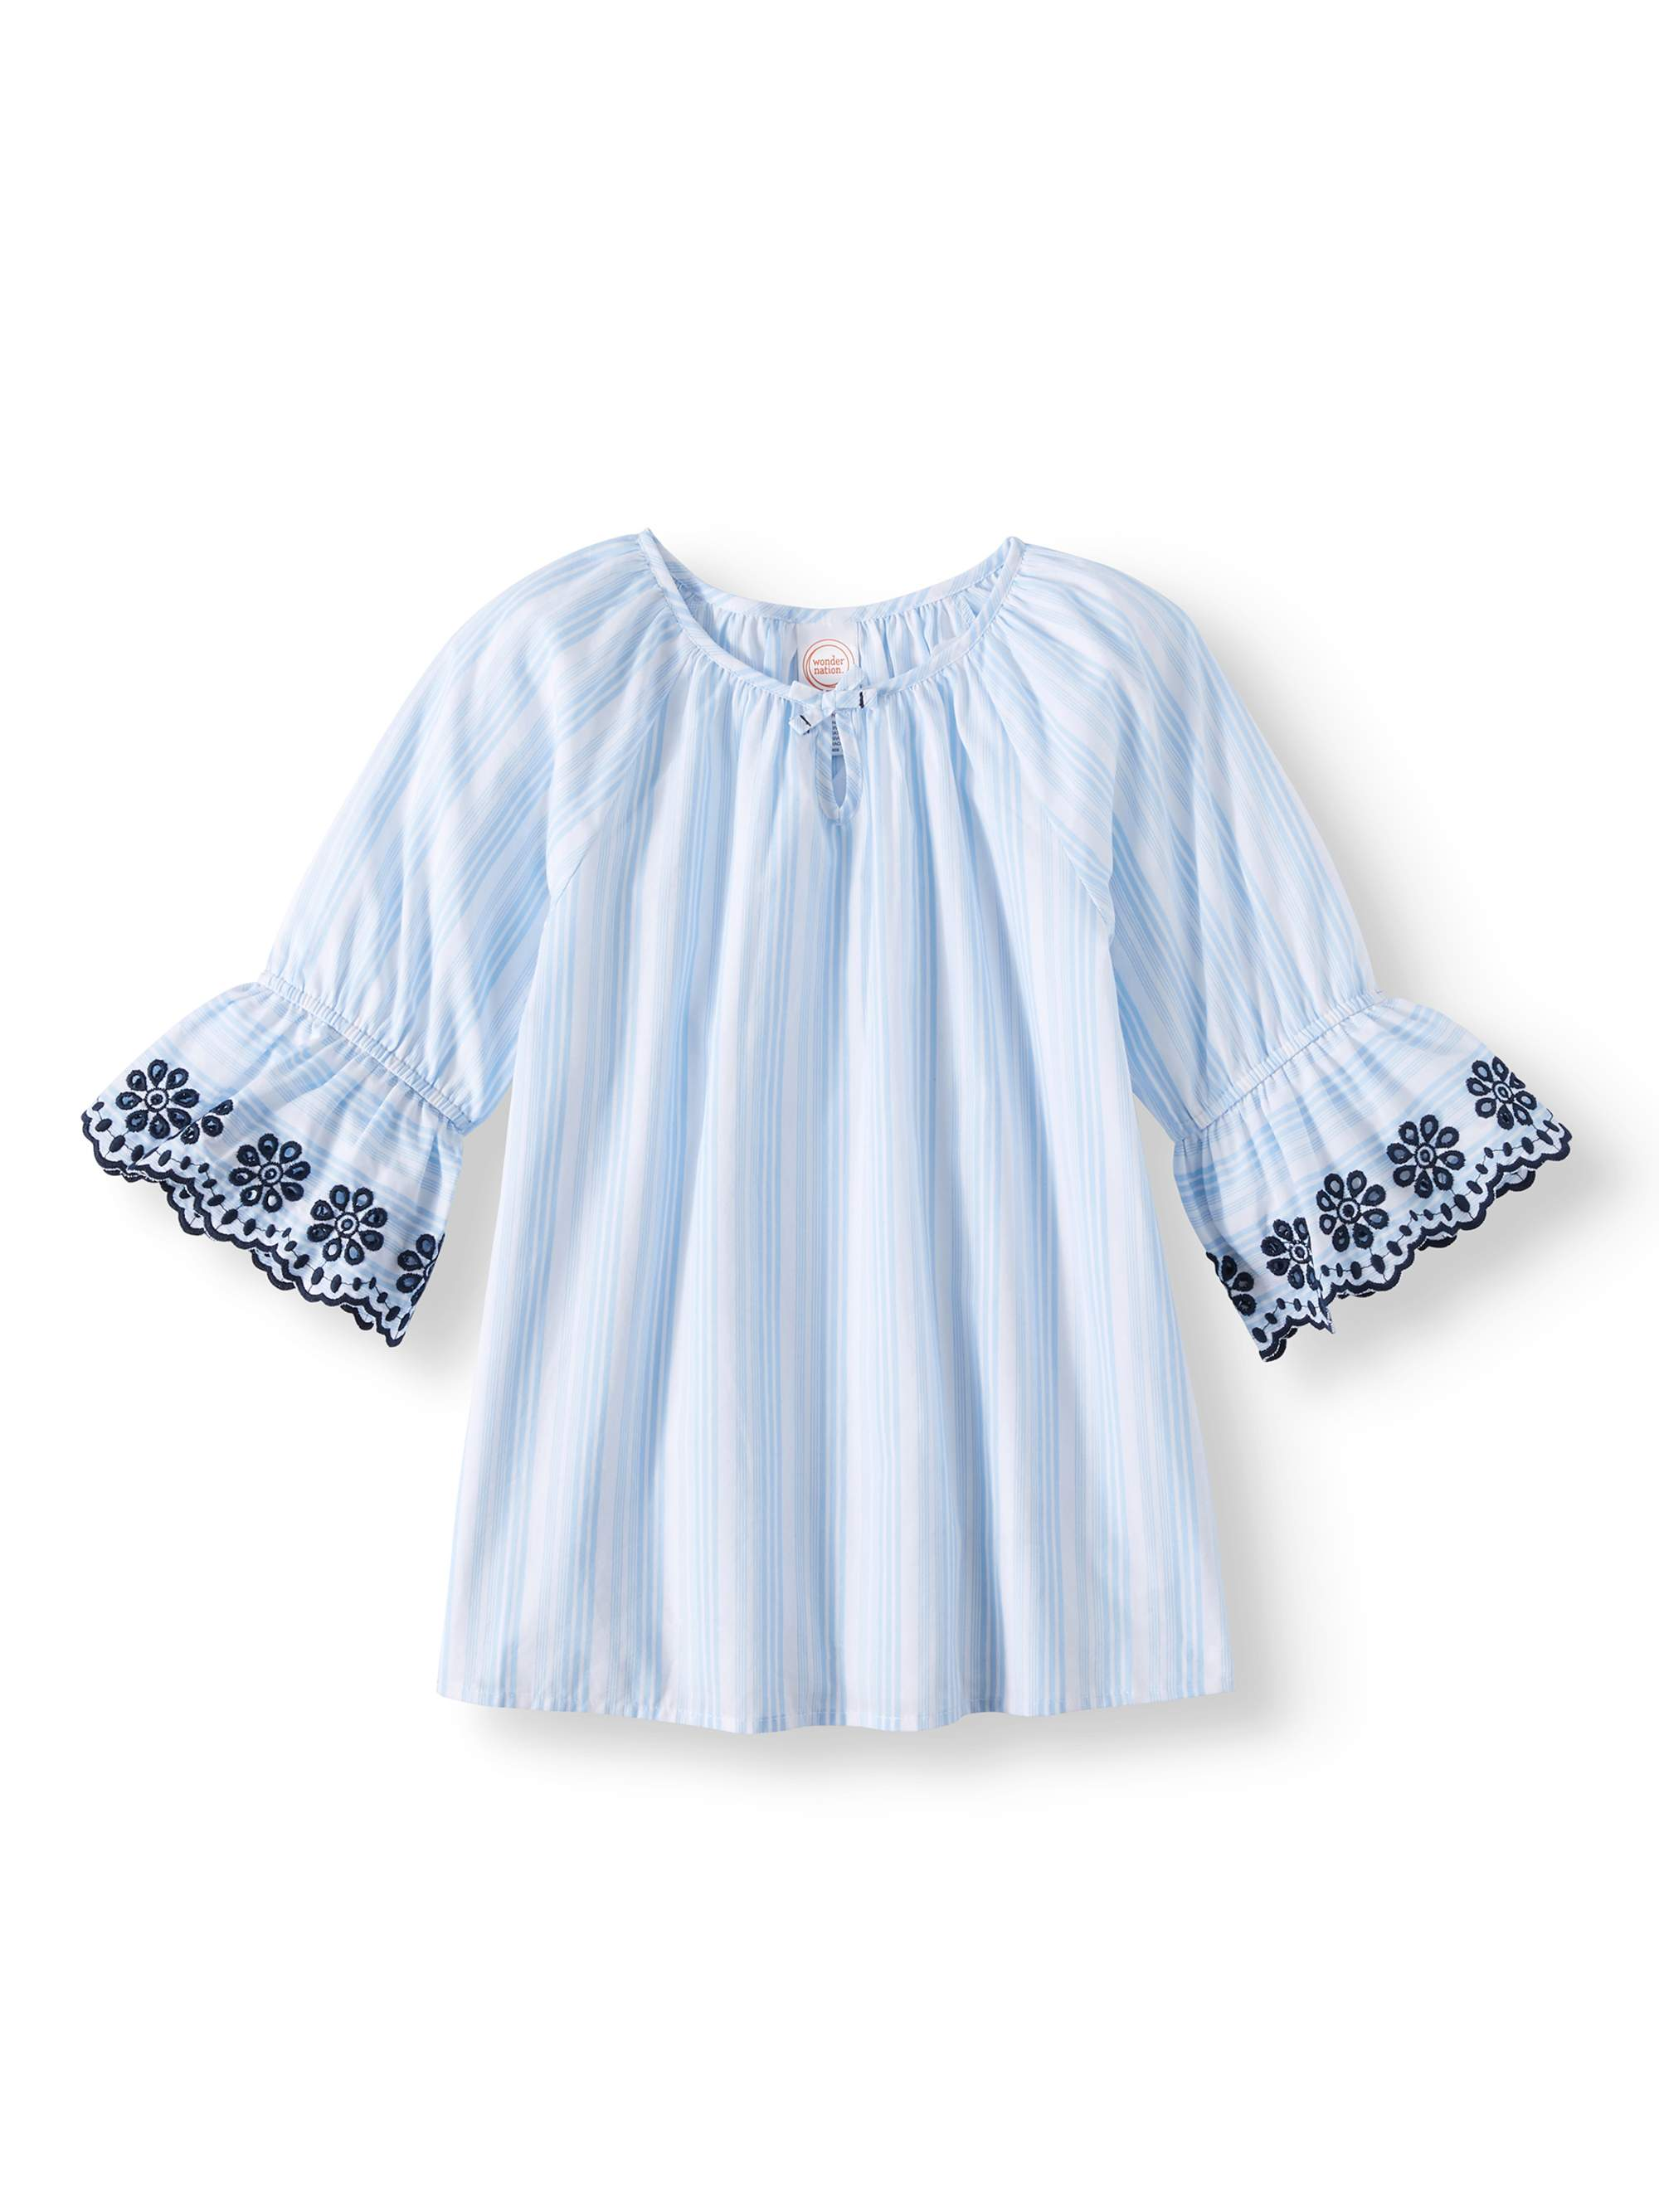 3/4 Bell Sleeve Top (Little Girls, Big Girls, & Plus)